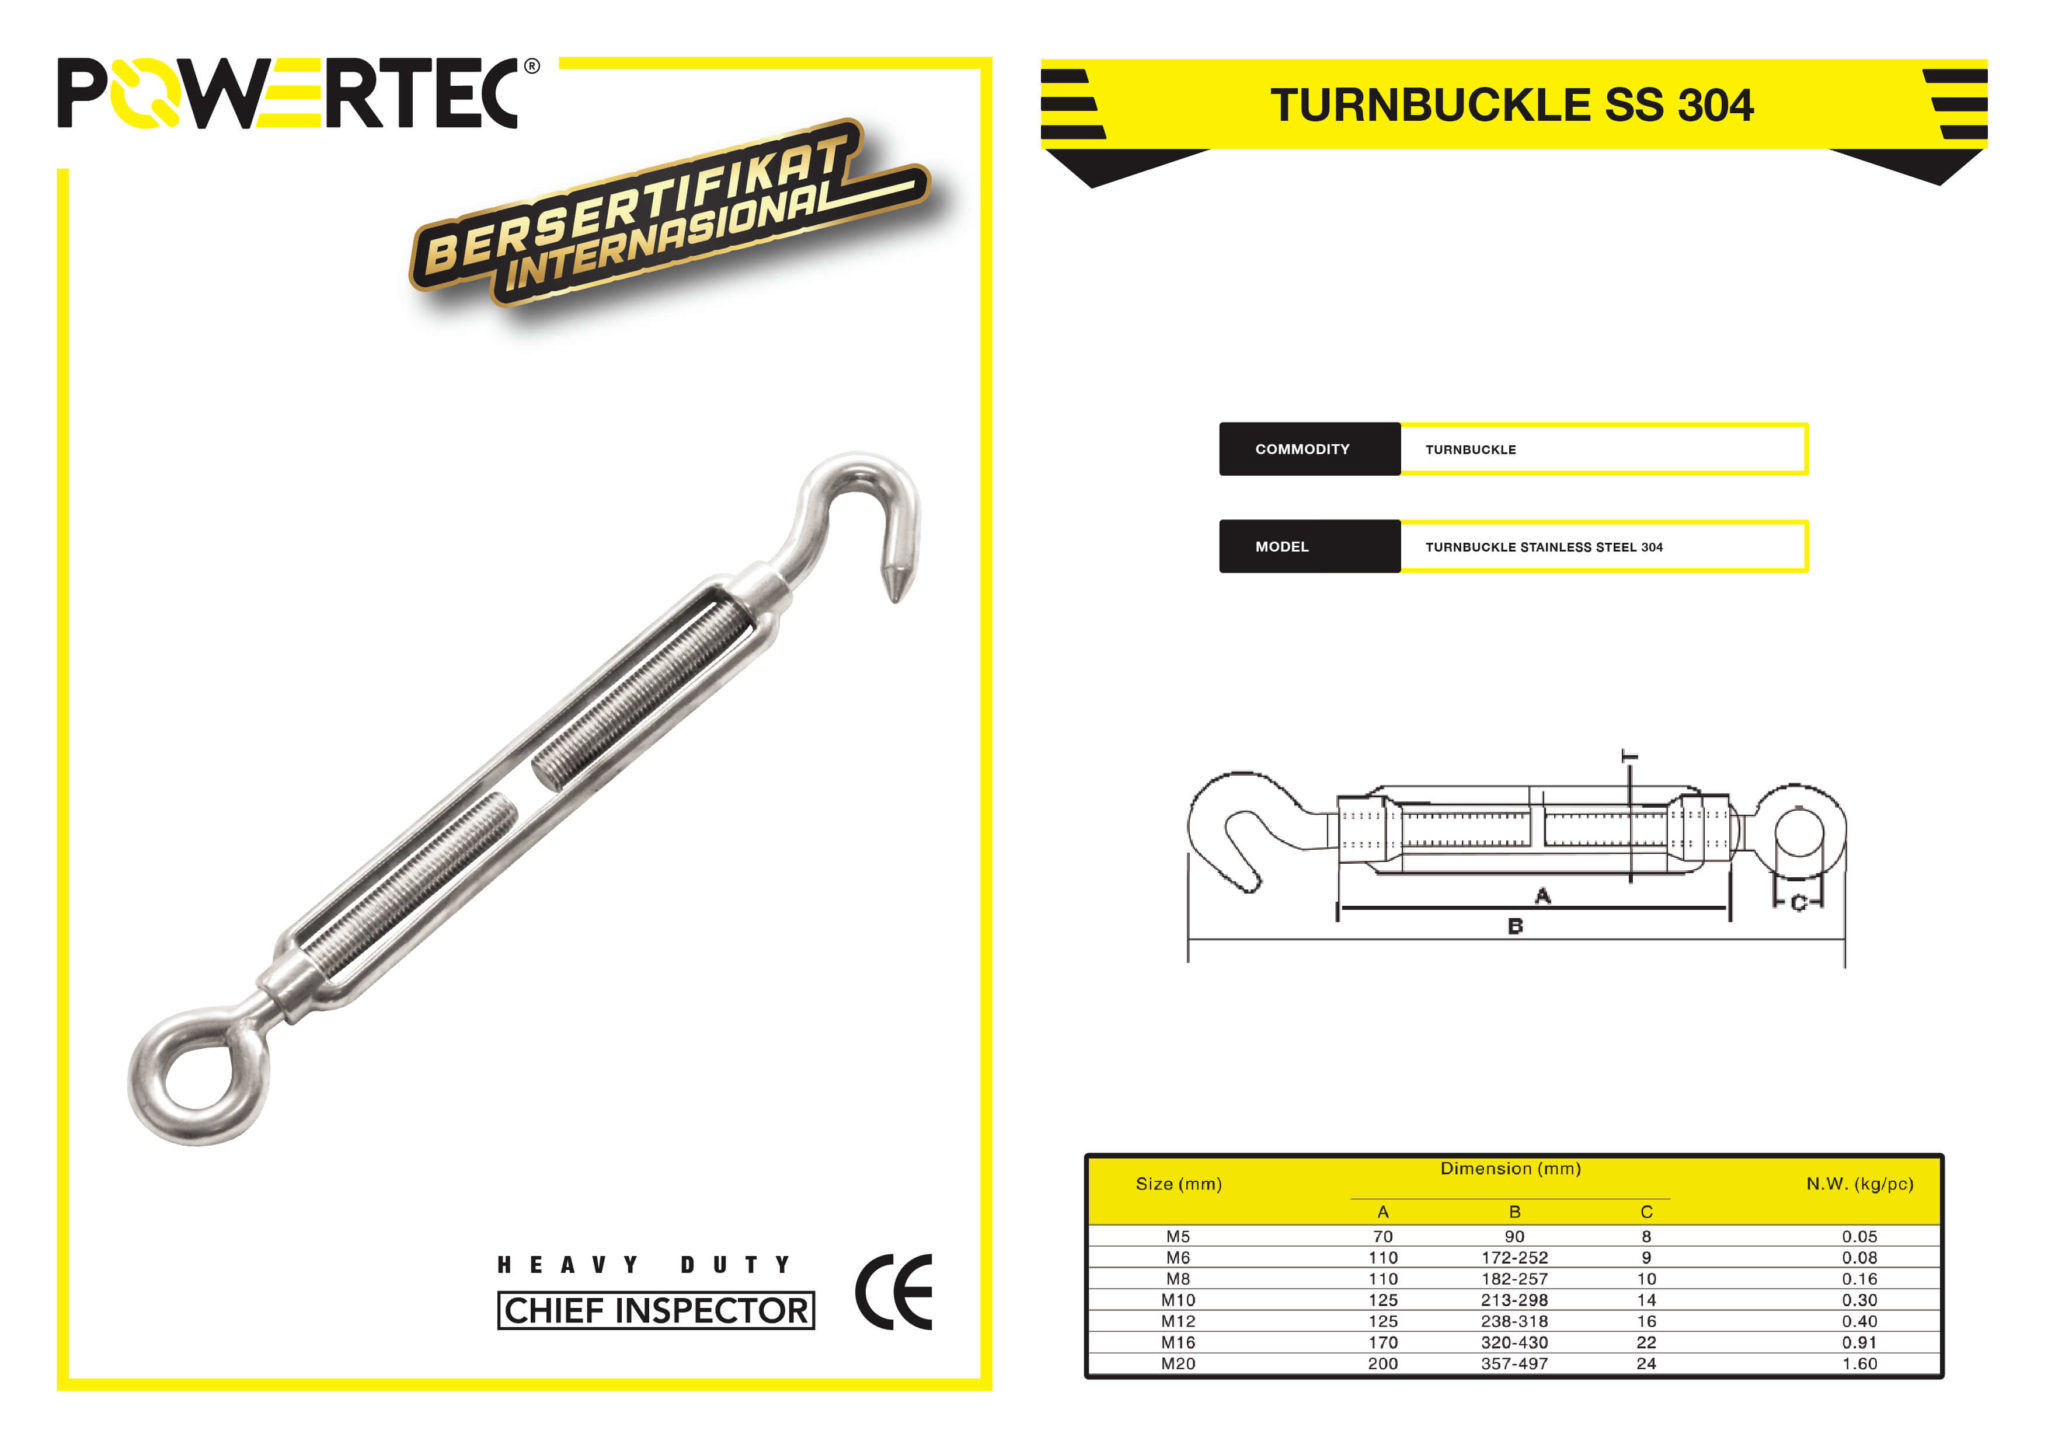 POWERTEC TURNBUCKLE SS 304 BROCHURE